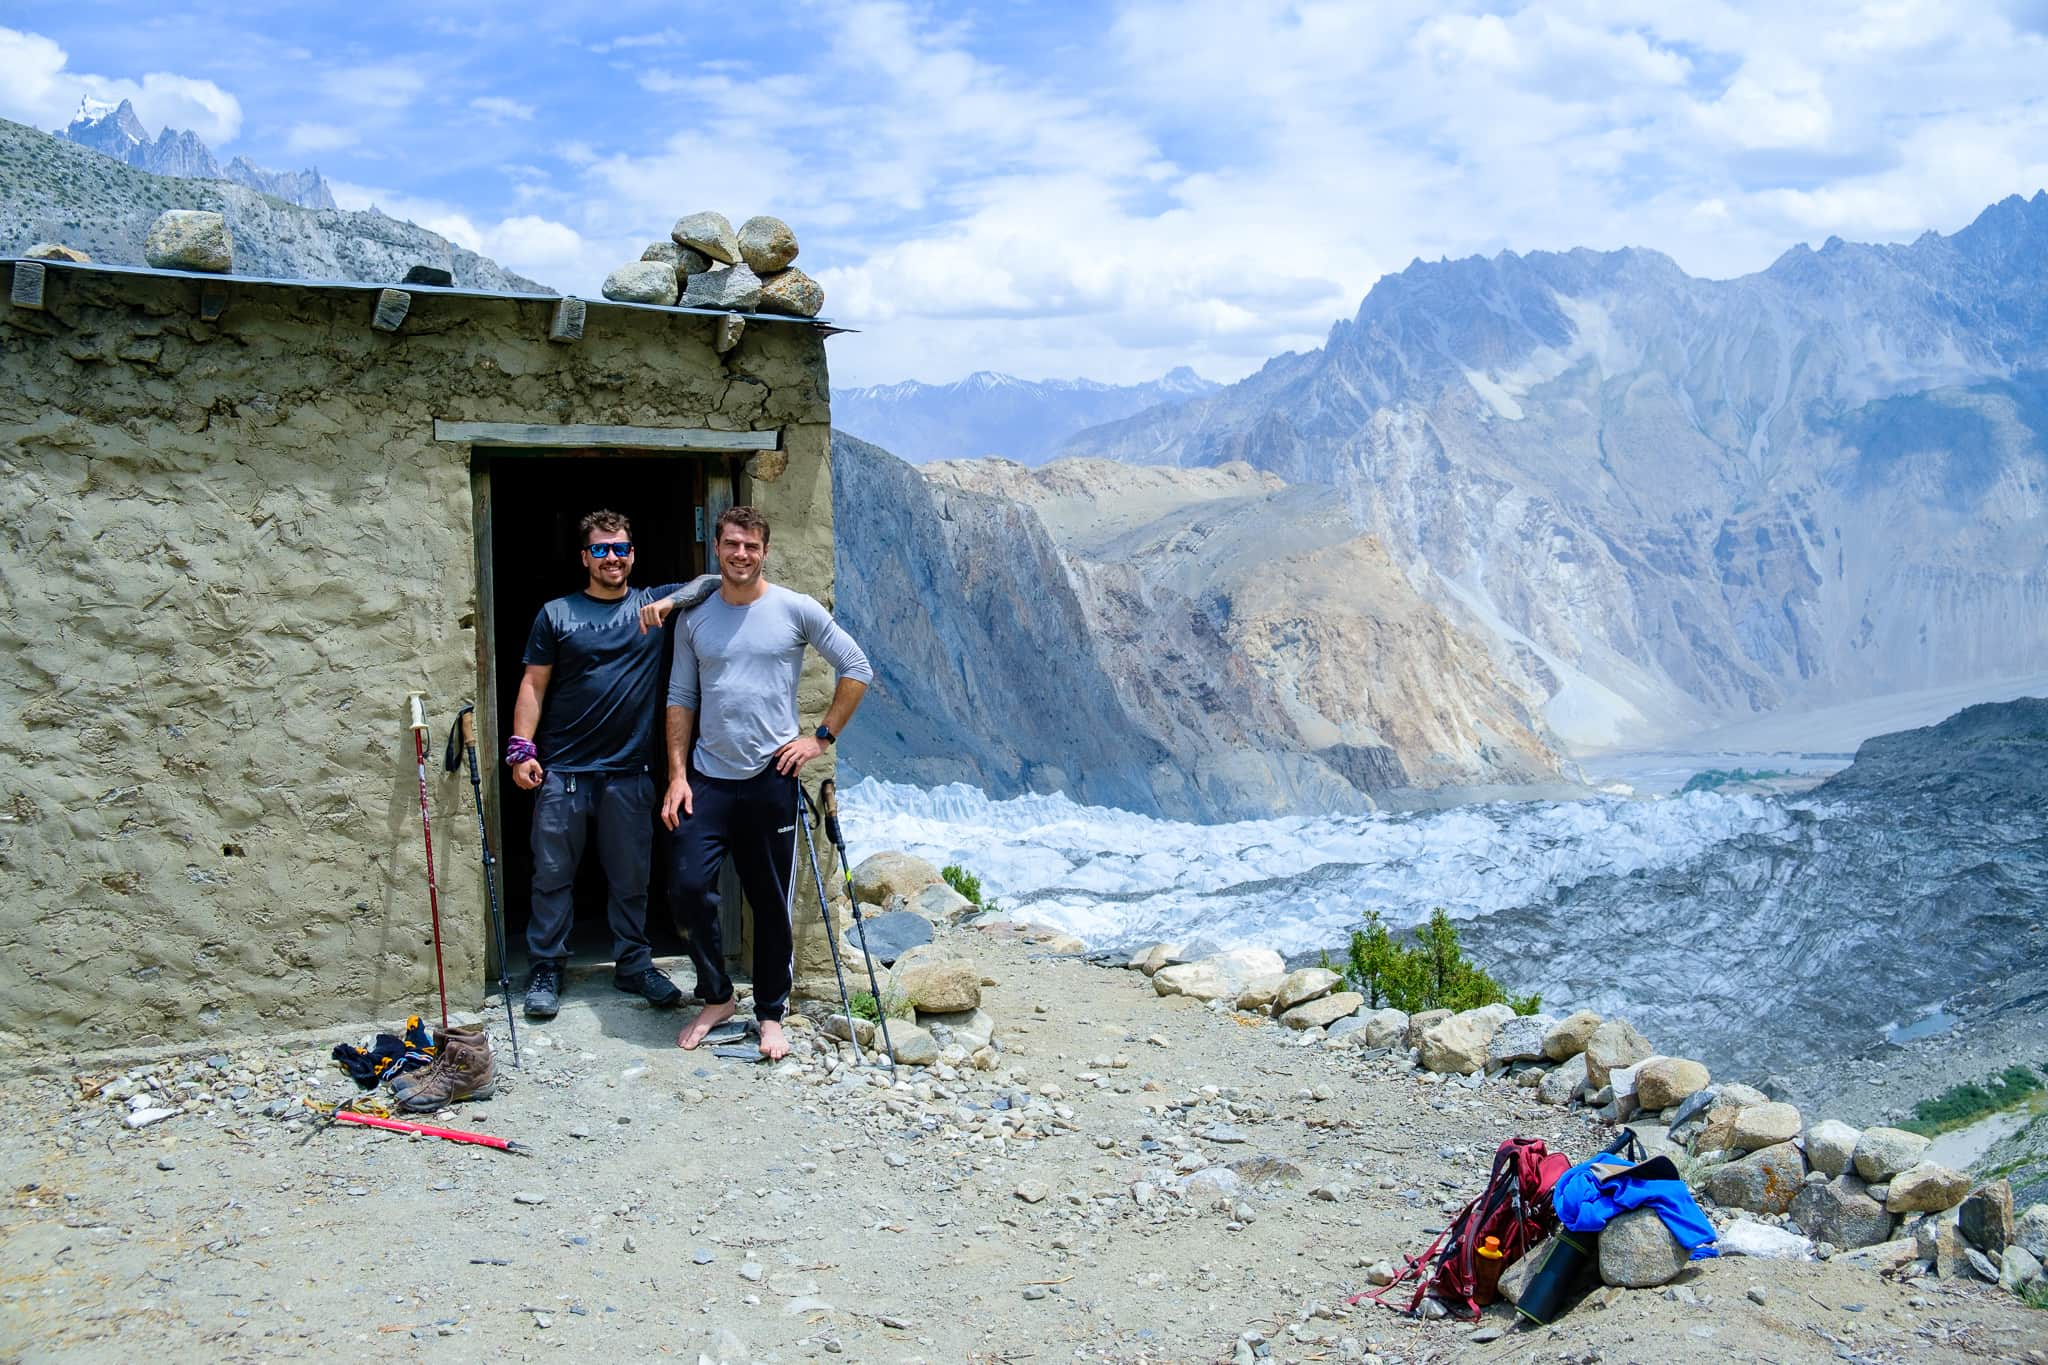 Will with a friend resting off their travel tiredness in a mountain hut